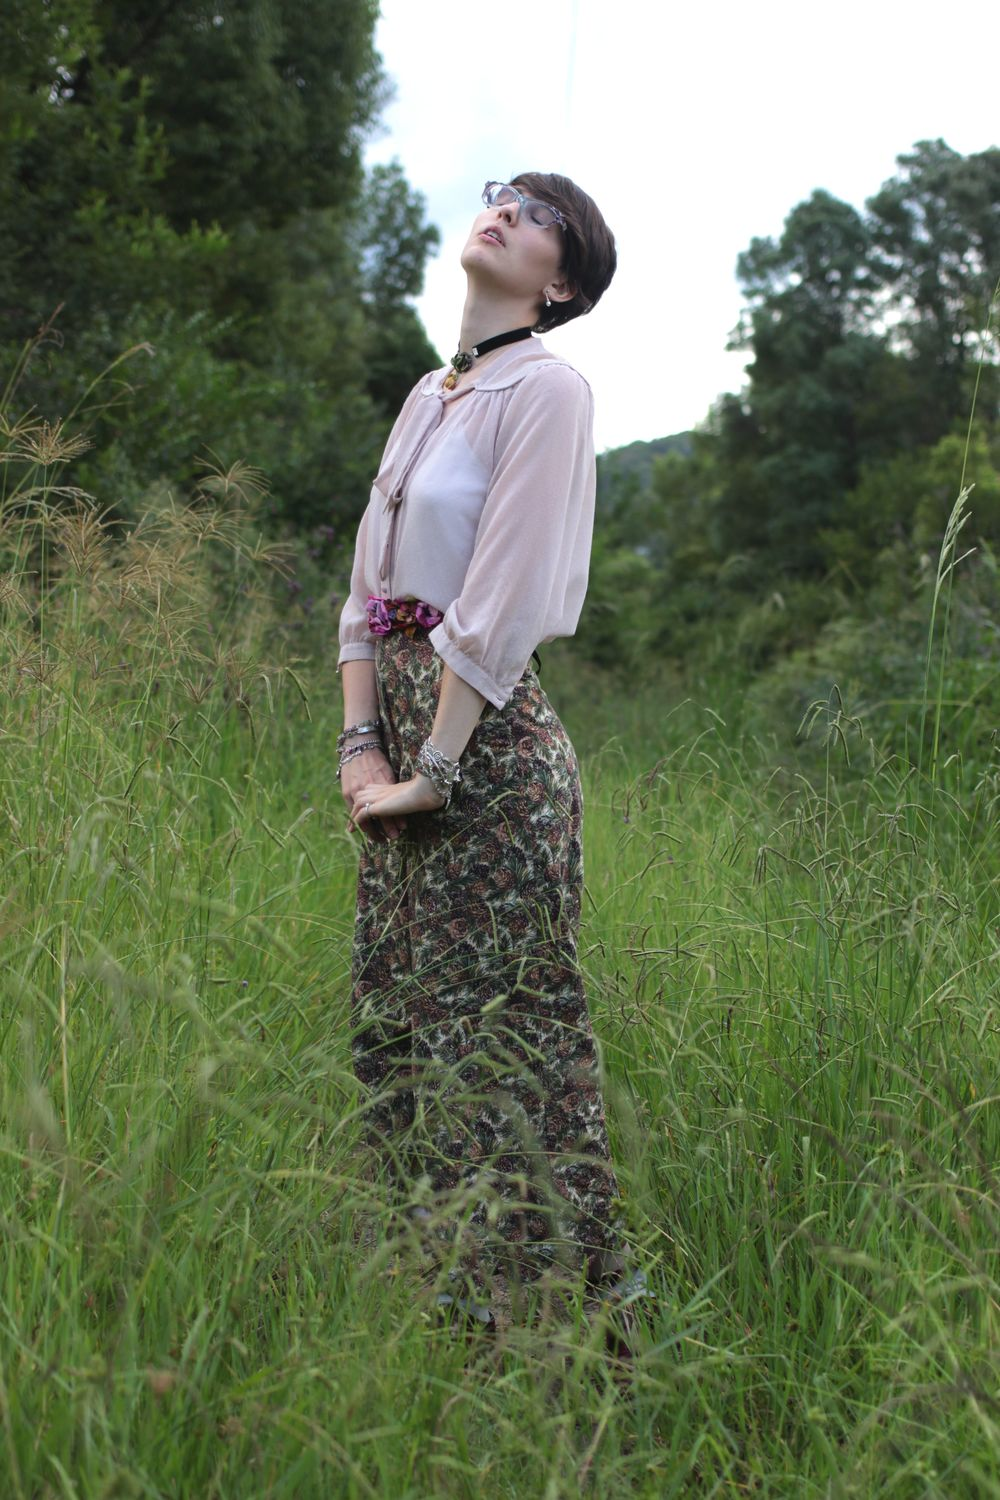 Shoes: Therapy, Pants: Home Made, Belt: Alannah Hill, Blouse: Thrifted